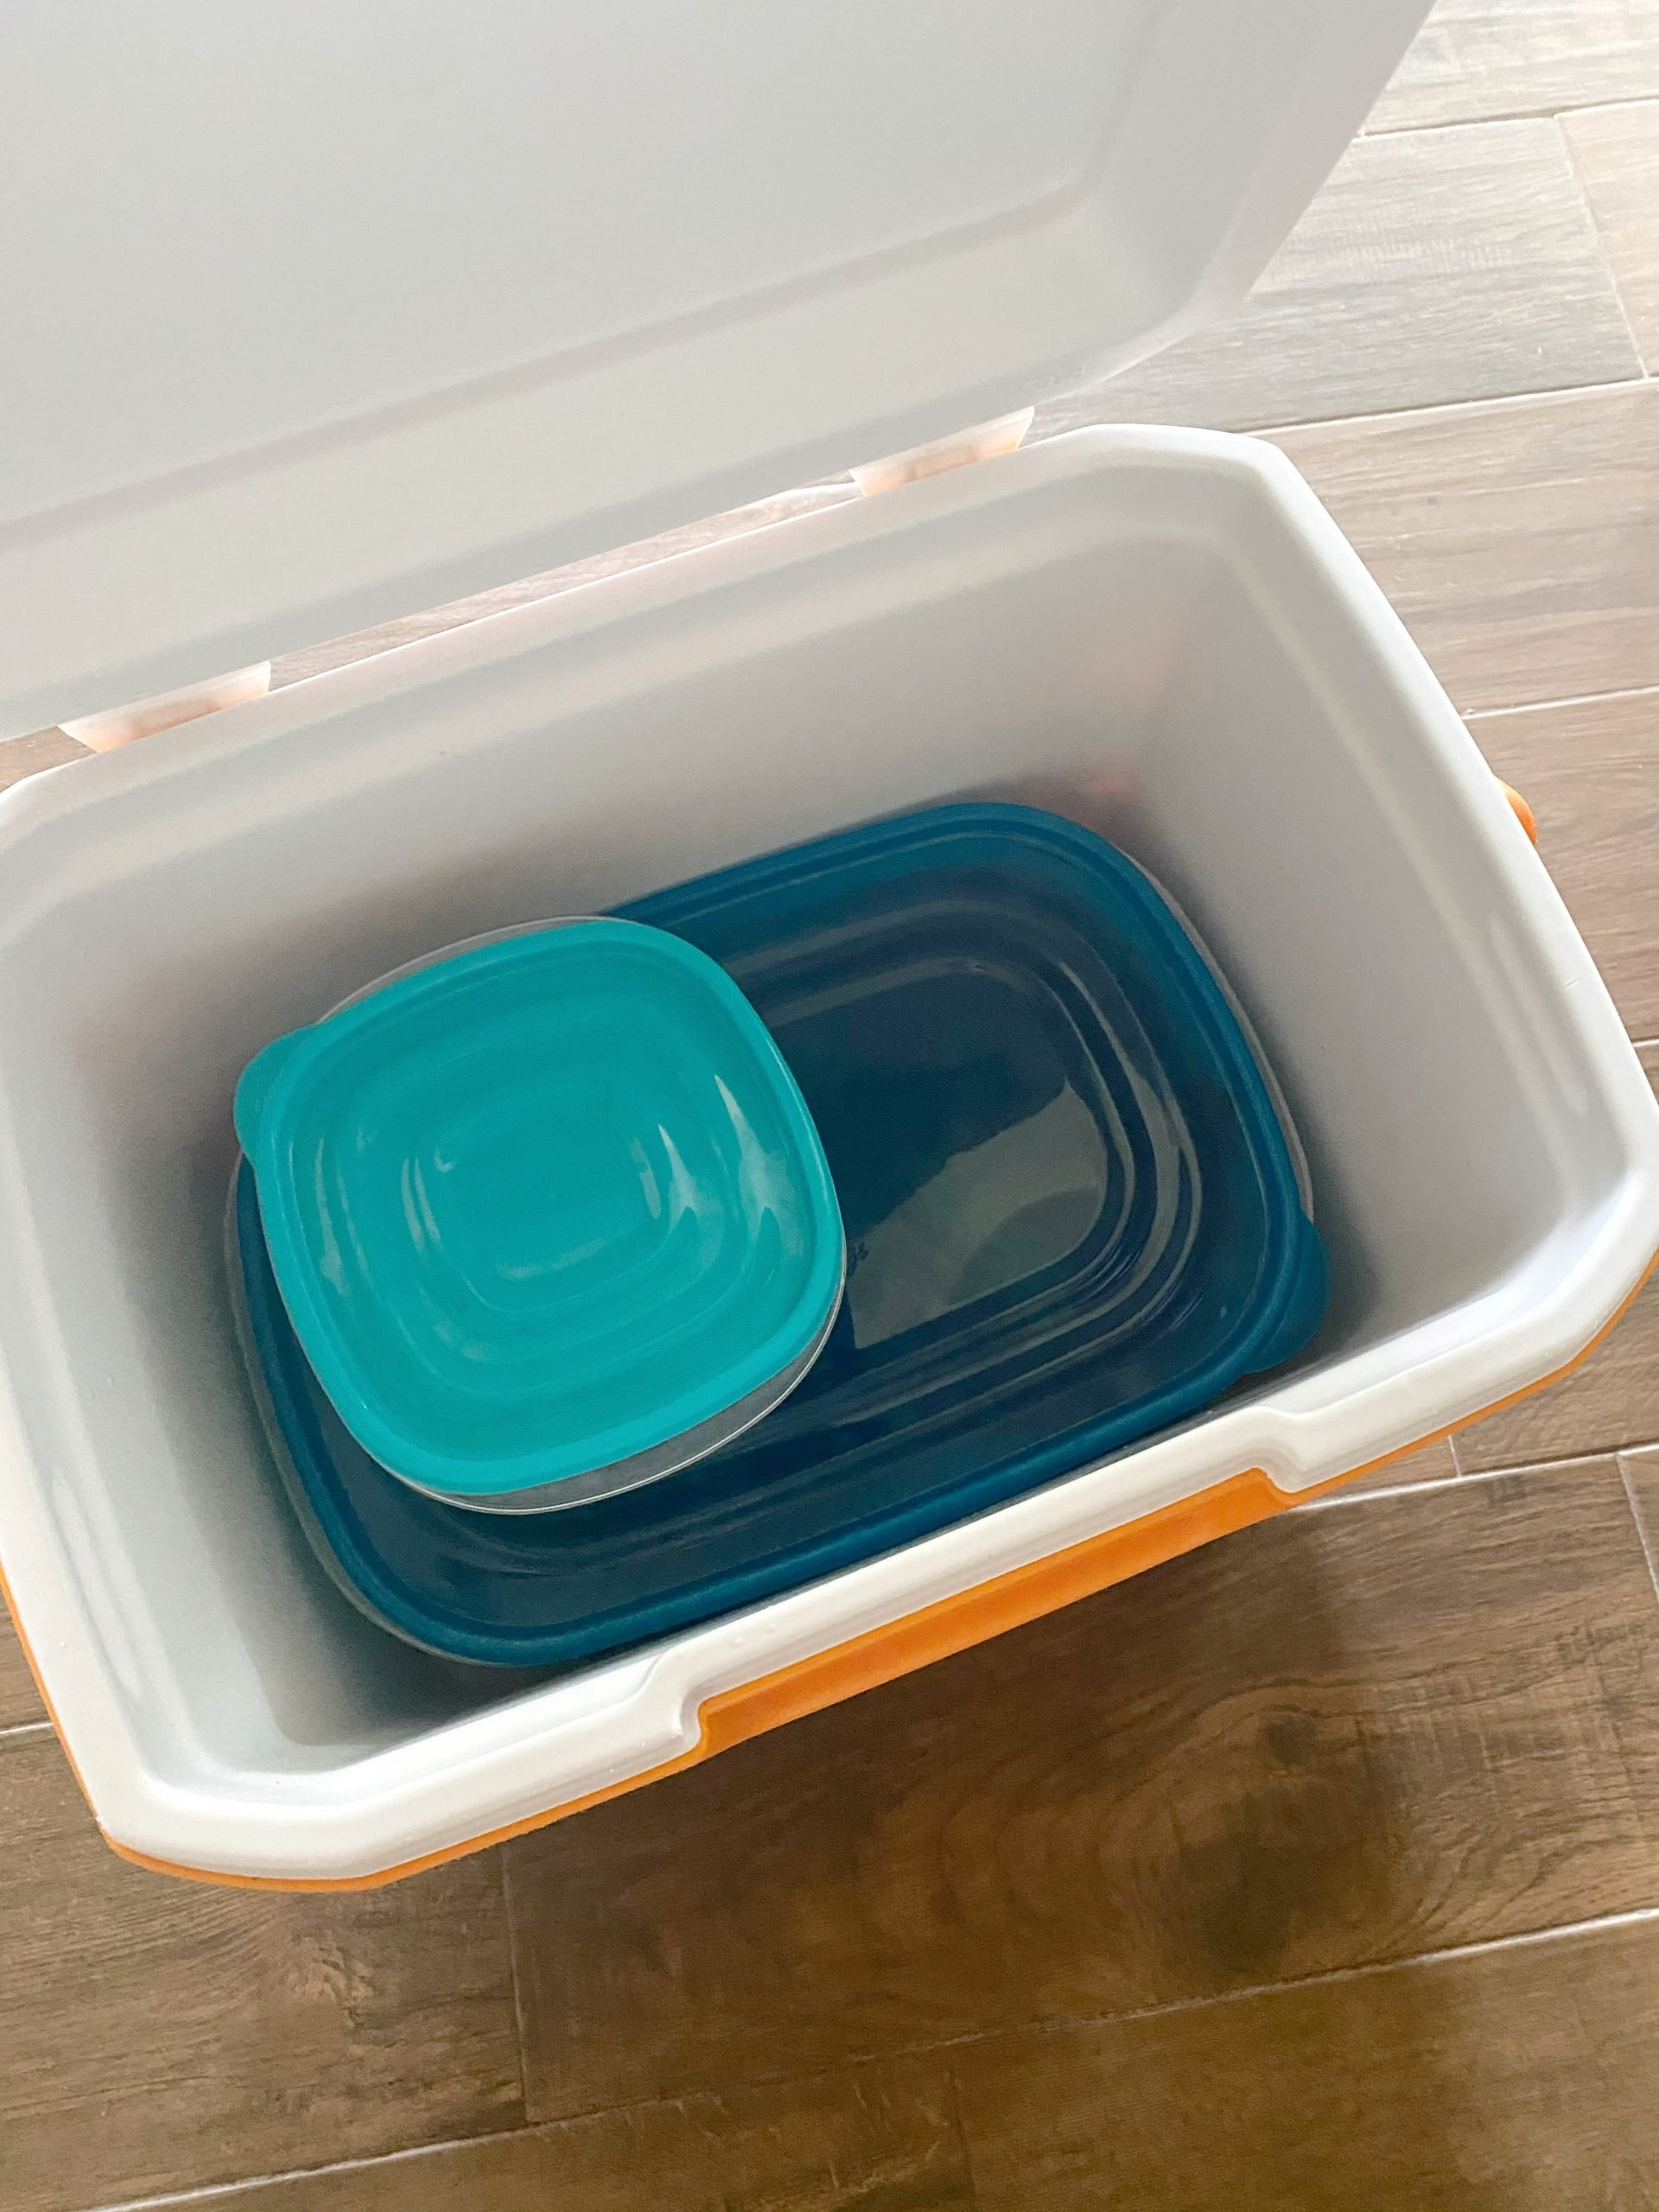 Plastic containers in a cooler